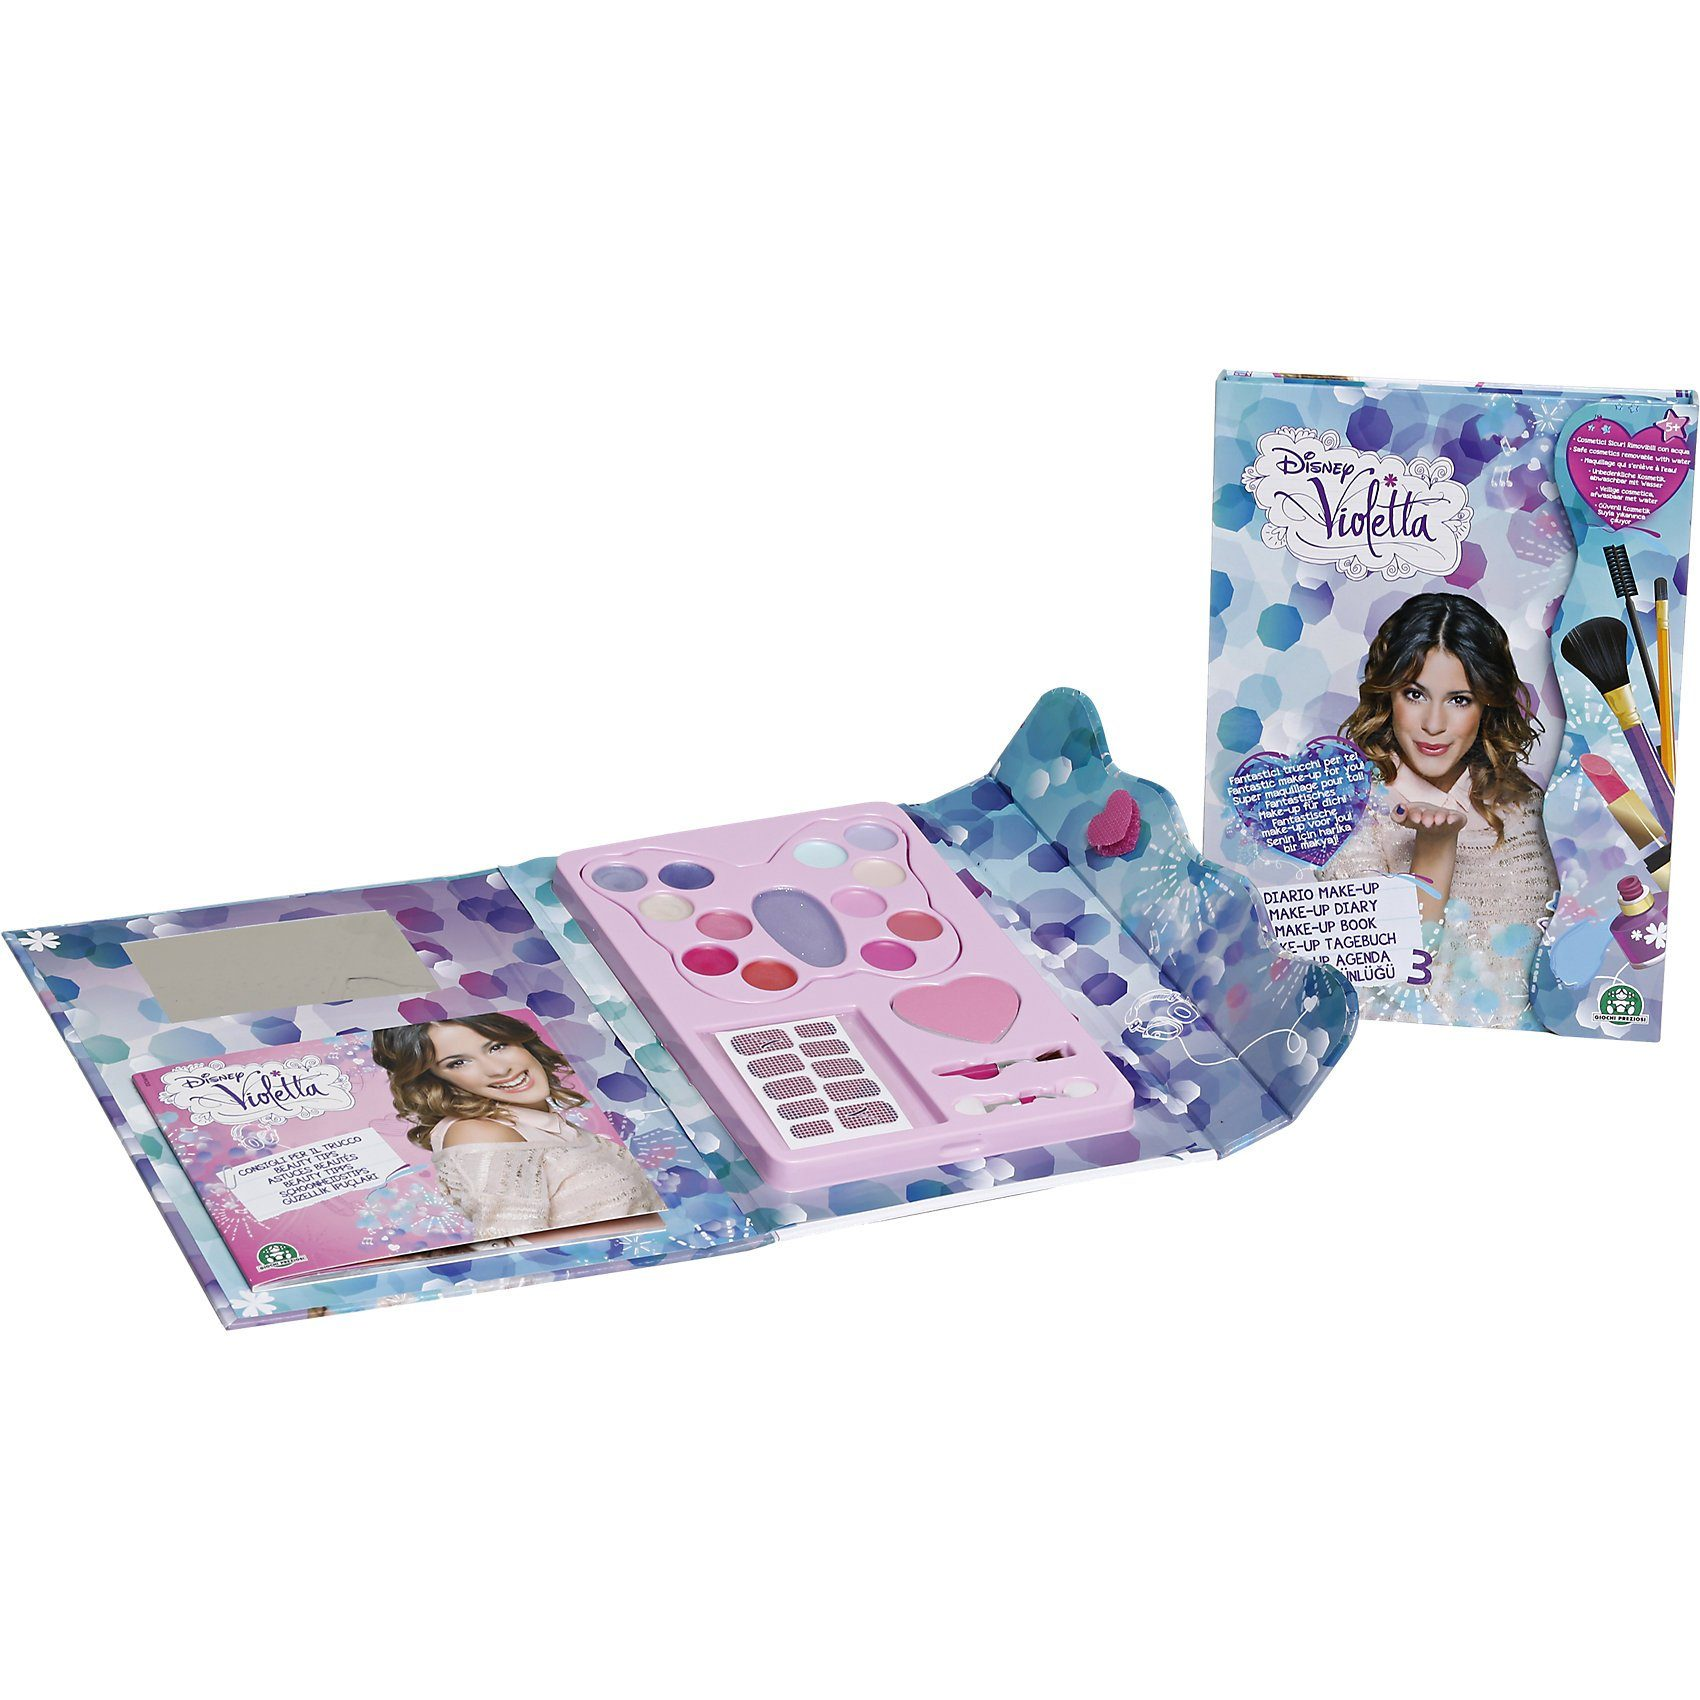 Giochi Preziosi Disney Violetta Make-up Tagebuch